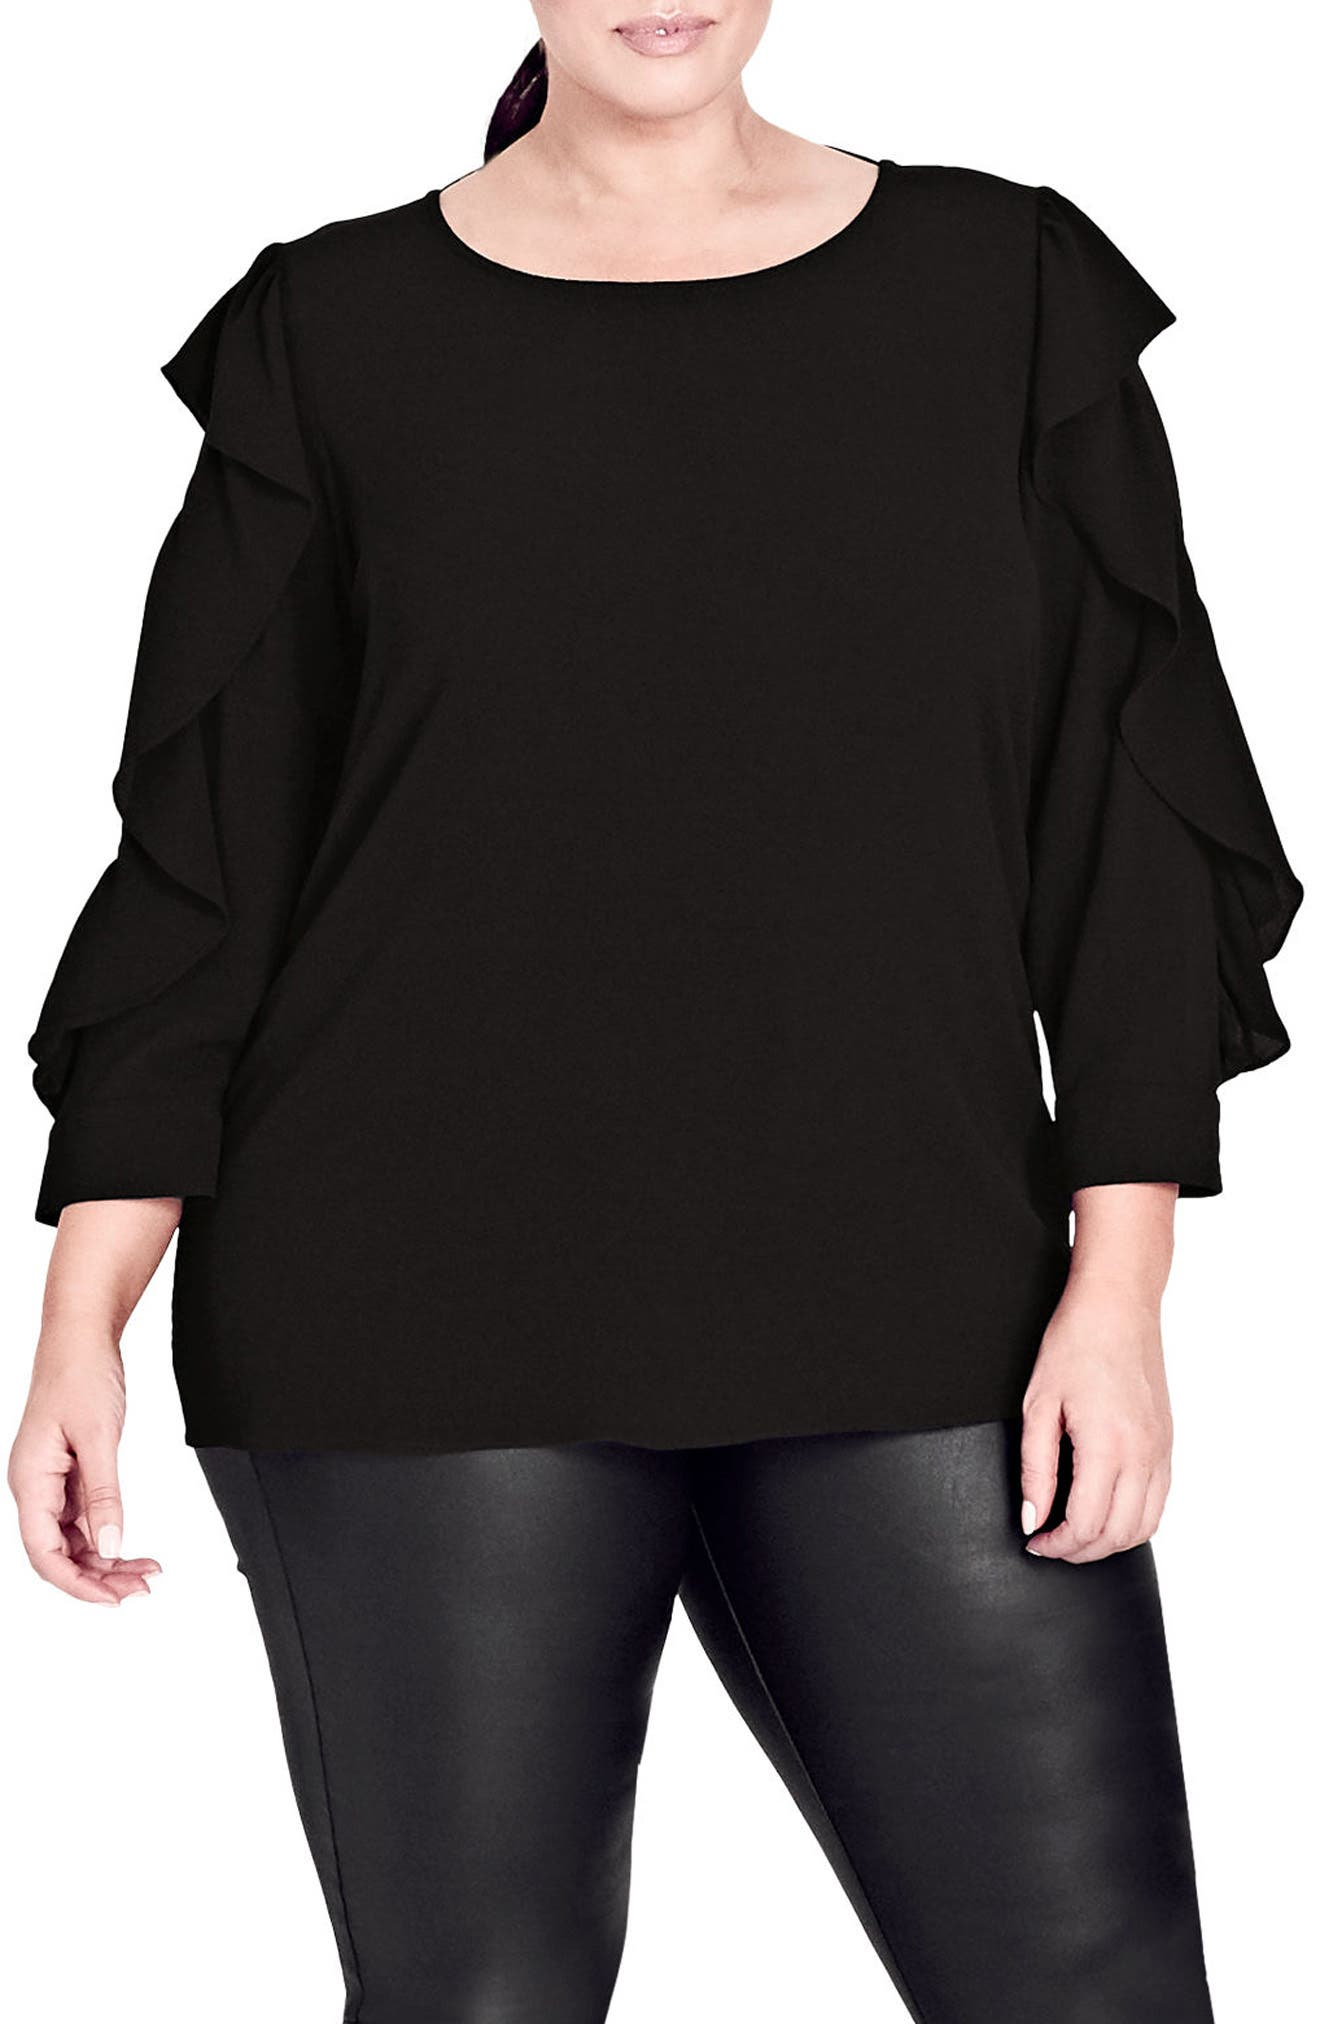 Main Image - City Chic Ruffle Sleeve Button Back Shirt (Plus Size)